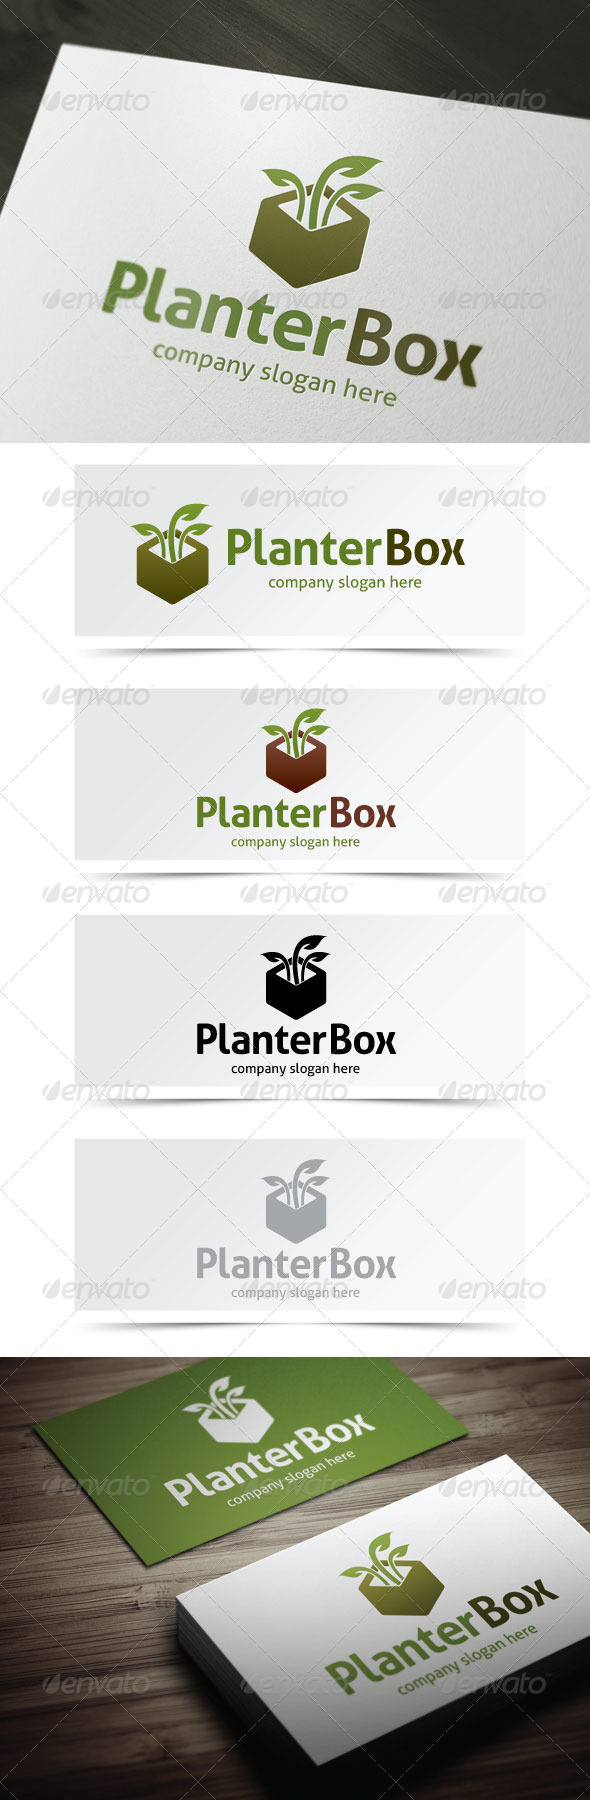 GraphicRiver Planter Box 5262070